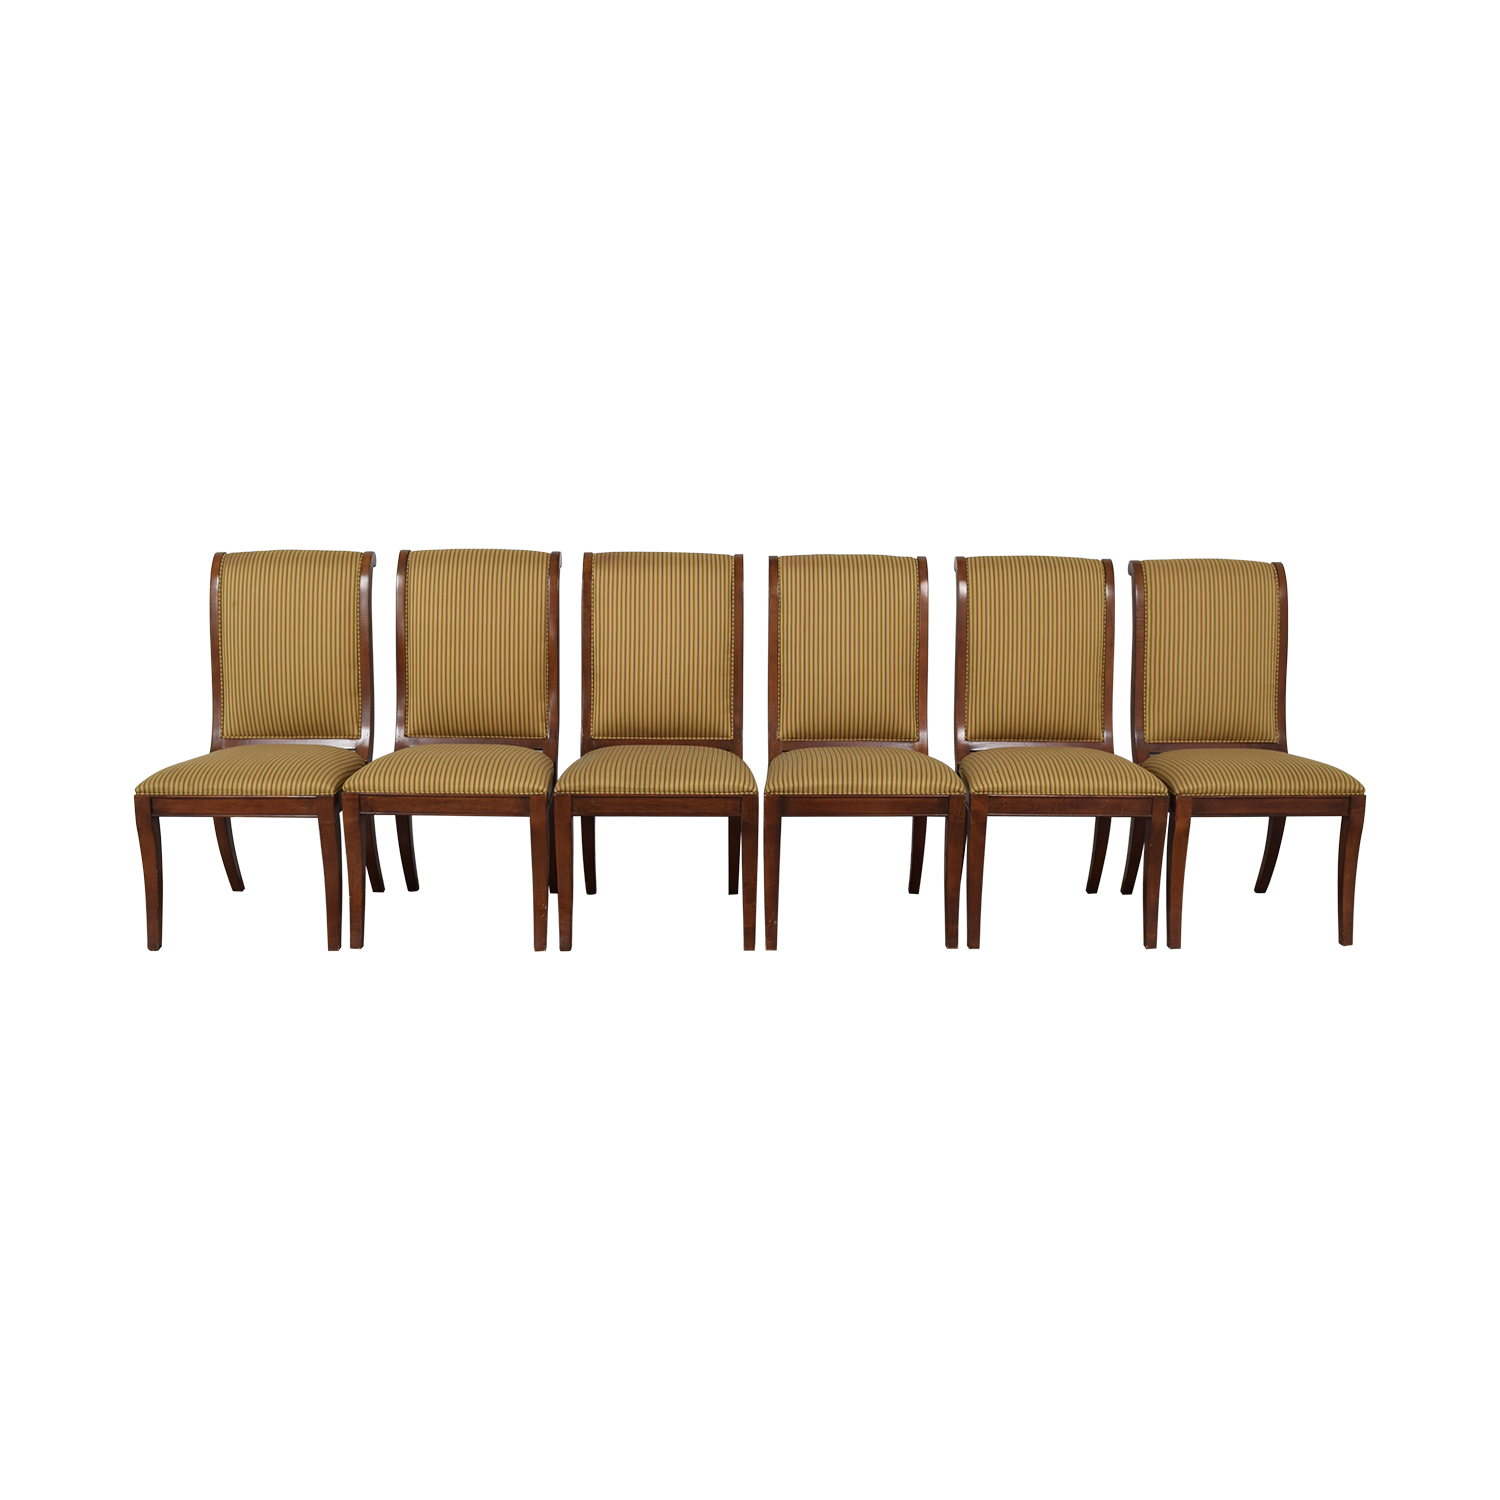 Drexel Heritage Drexel Heritage Dining Chairs on sale